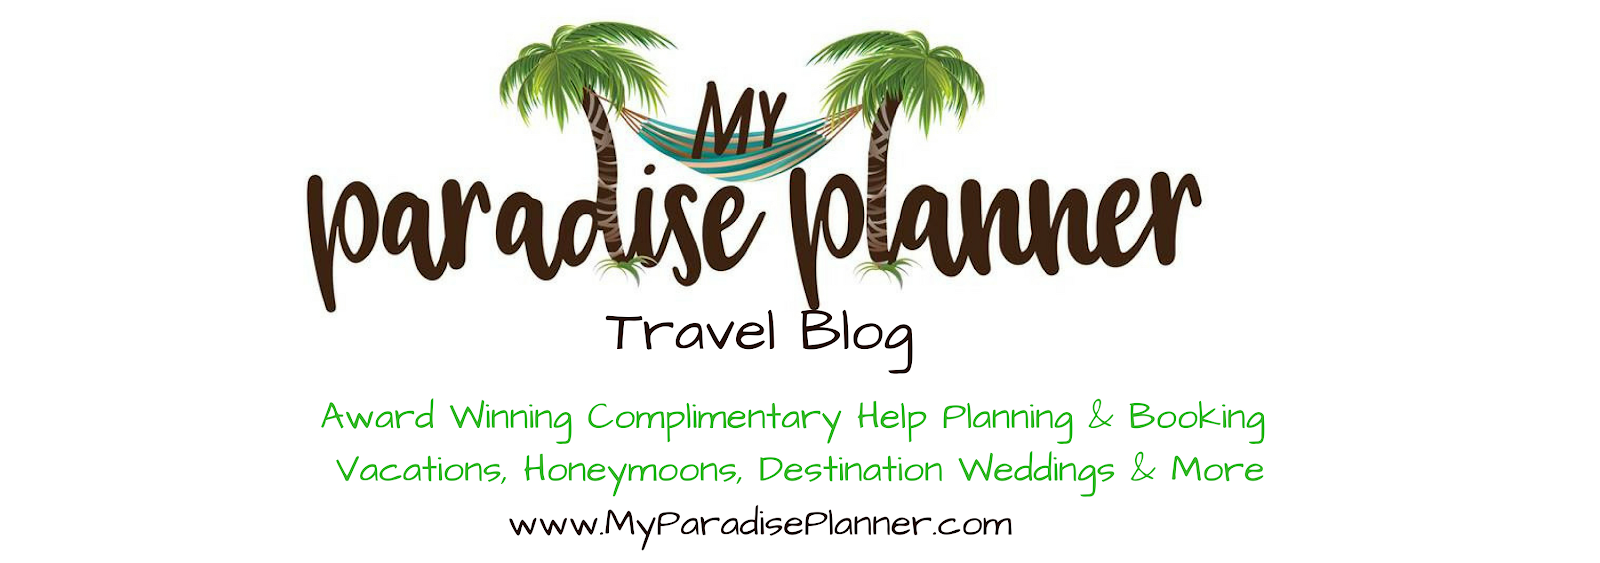 My Paradise Planner Travel Blog